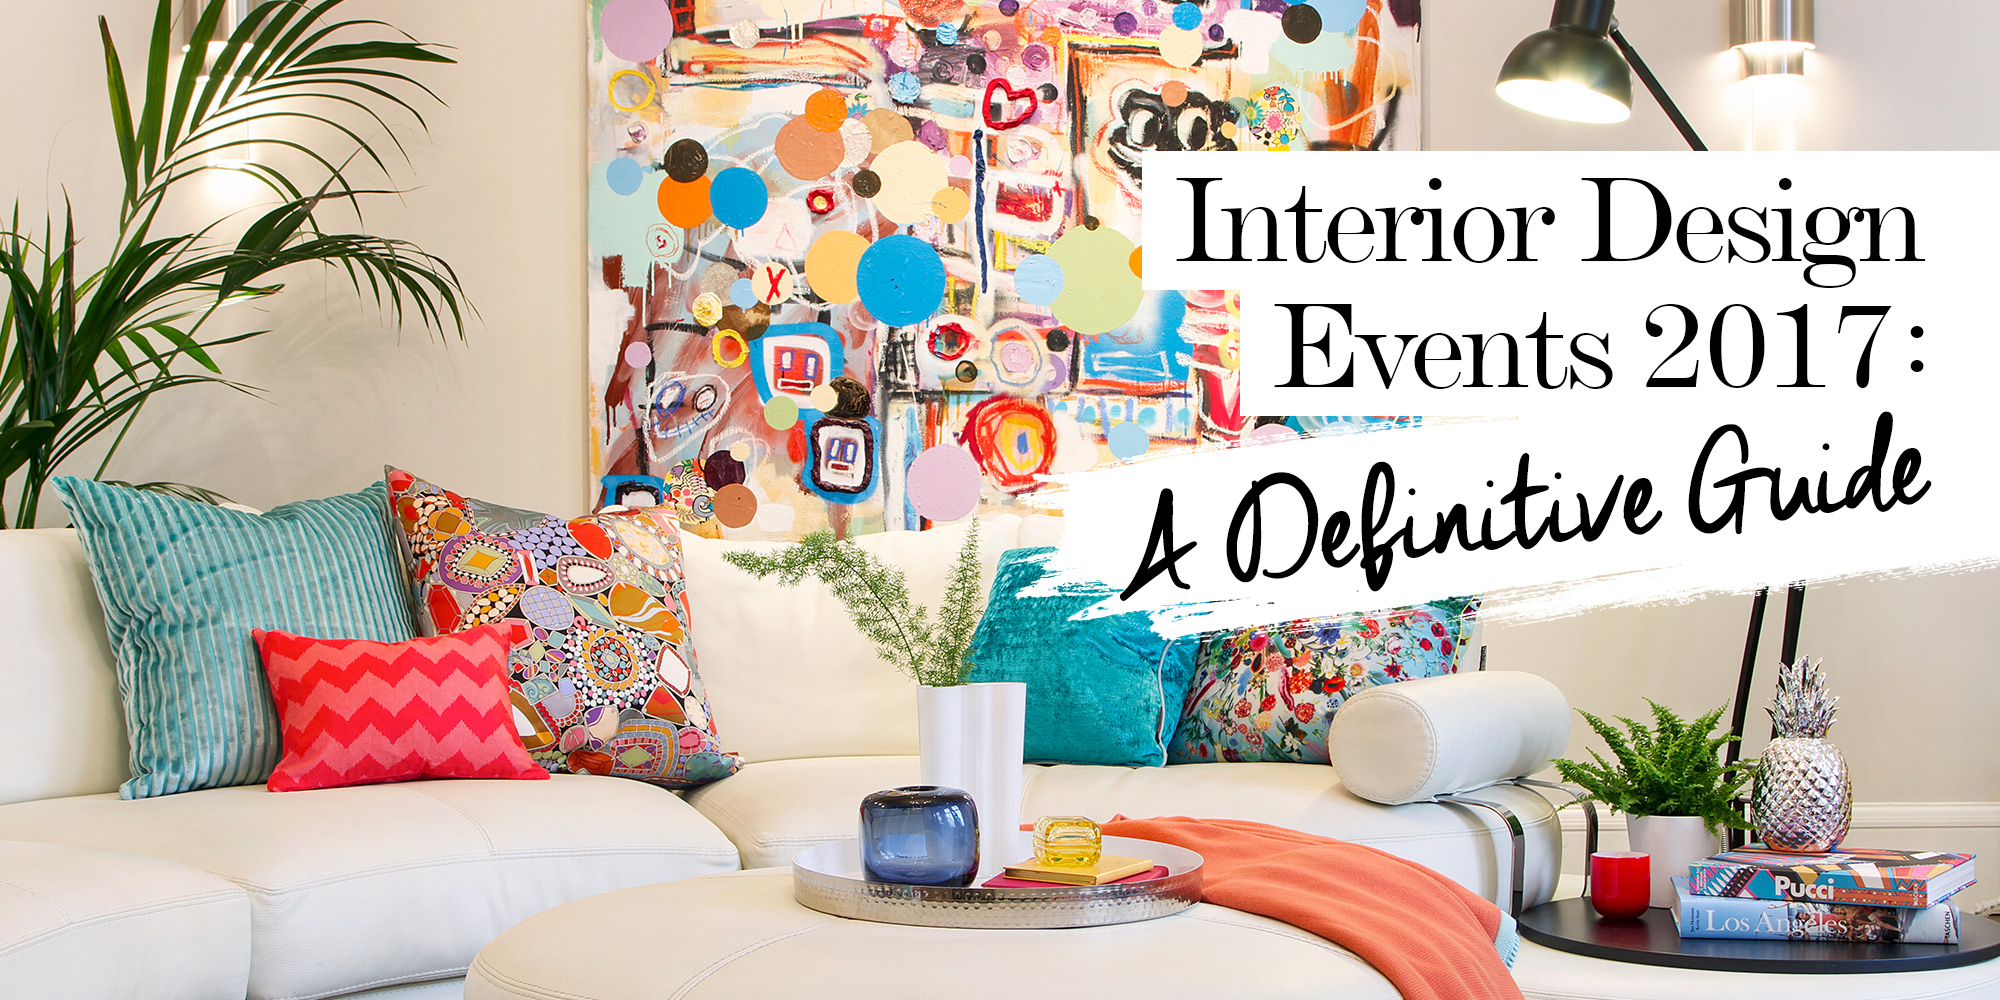 Home Design Expo Images Ideas Aesthetic